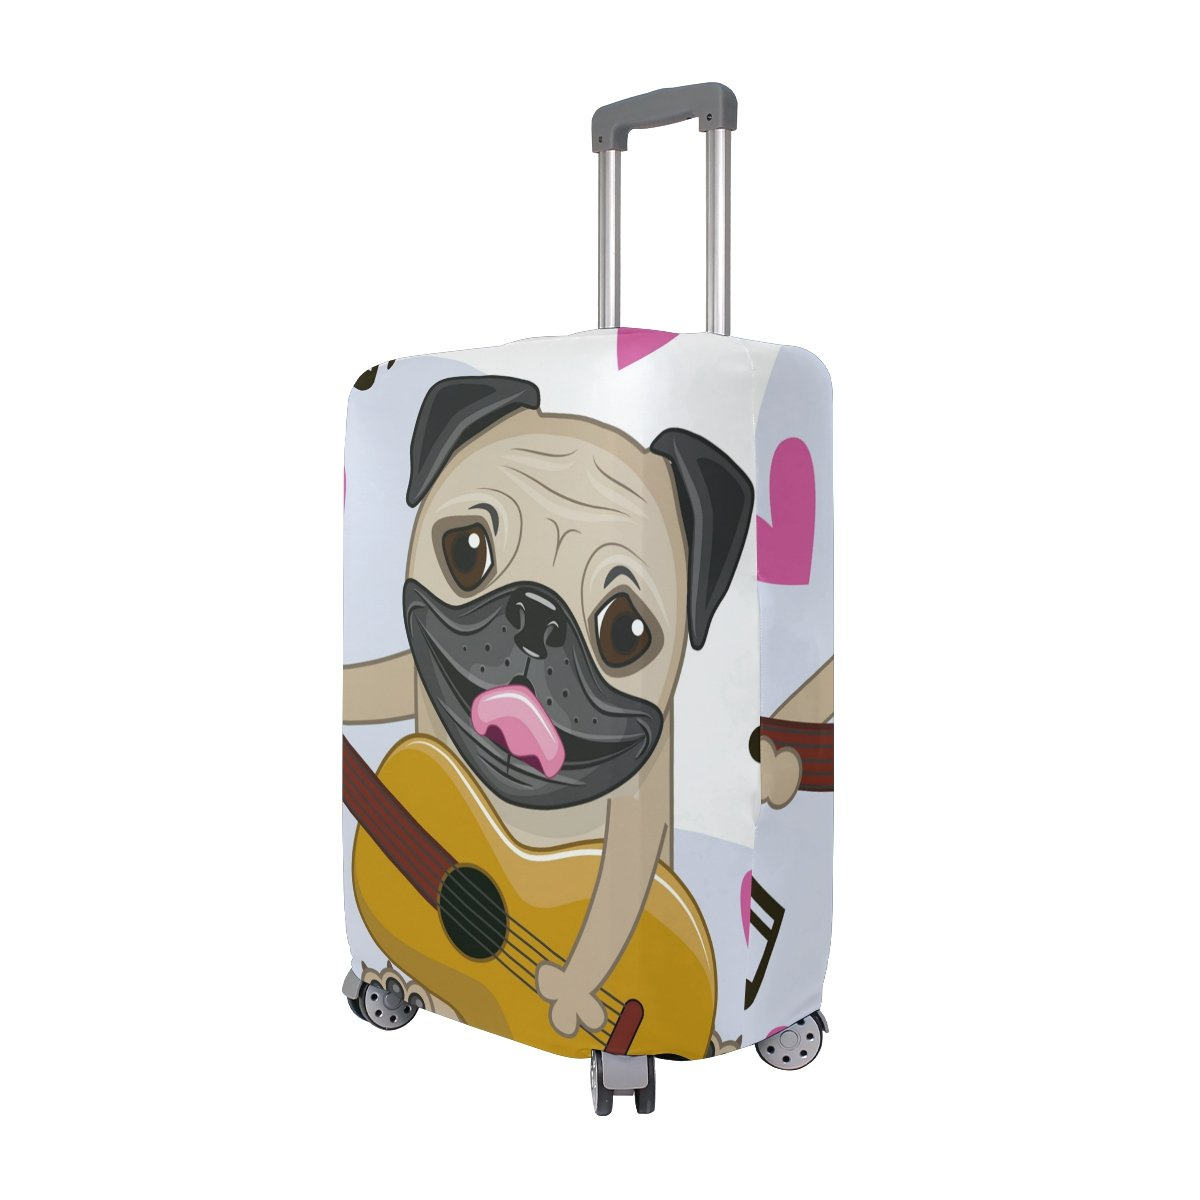 Cute Dog Puppy Music Hearts Love Suitcase Luggage Cover Protector for Travel Kids Men Women by ALAZA (Image #2)